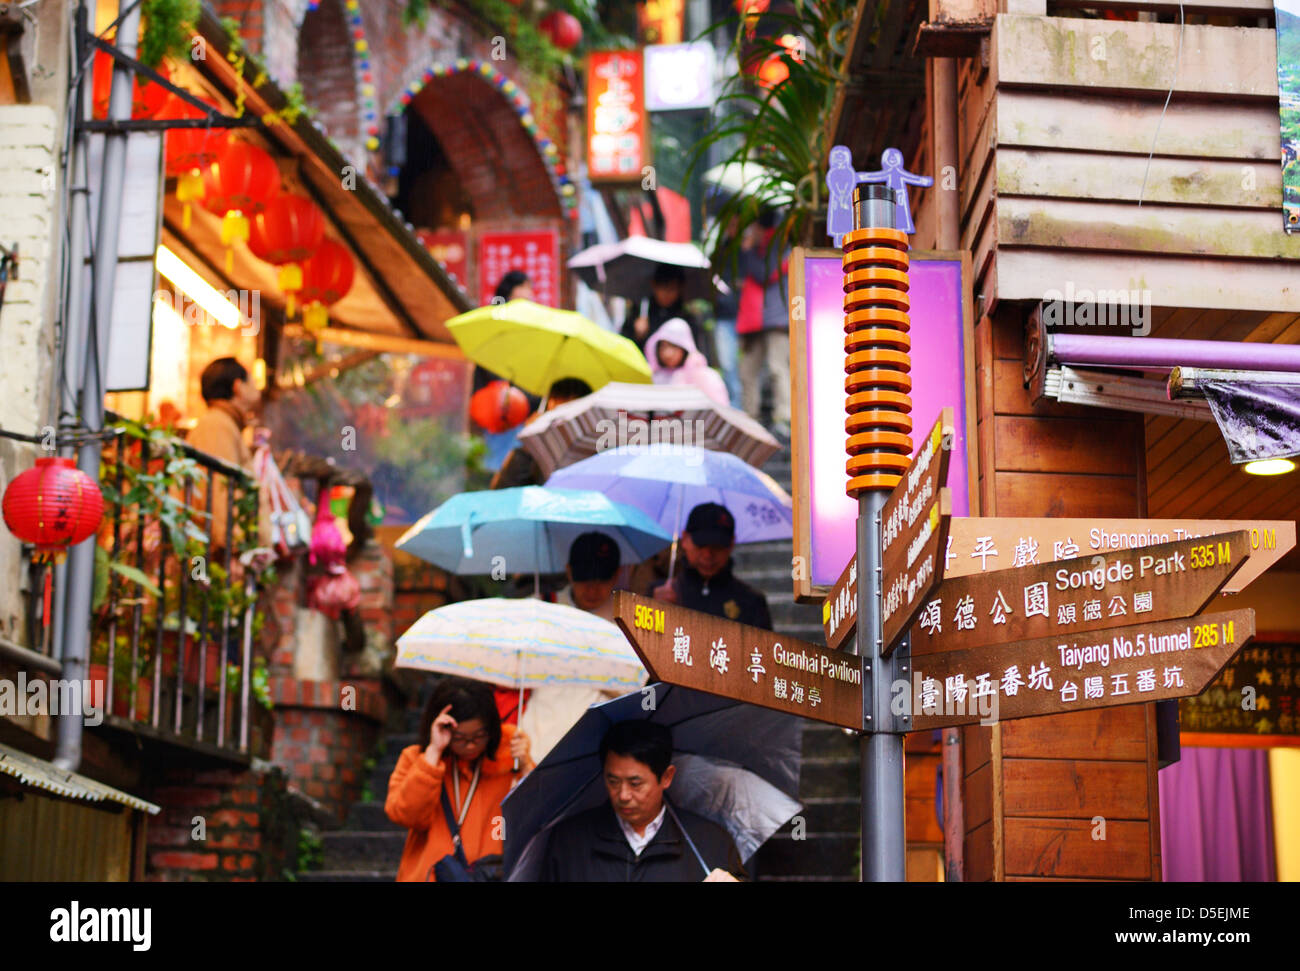 Tourists stroll through quaint alleys in Jiufen, Taiwan. - Stock Image